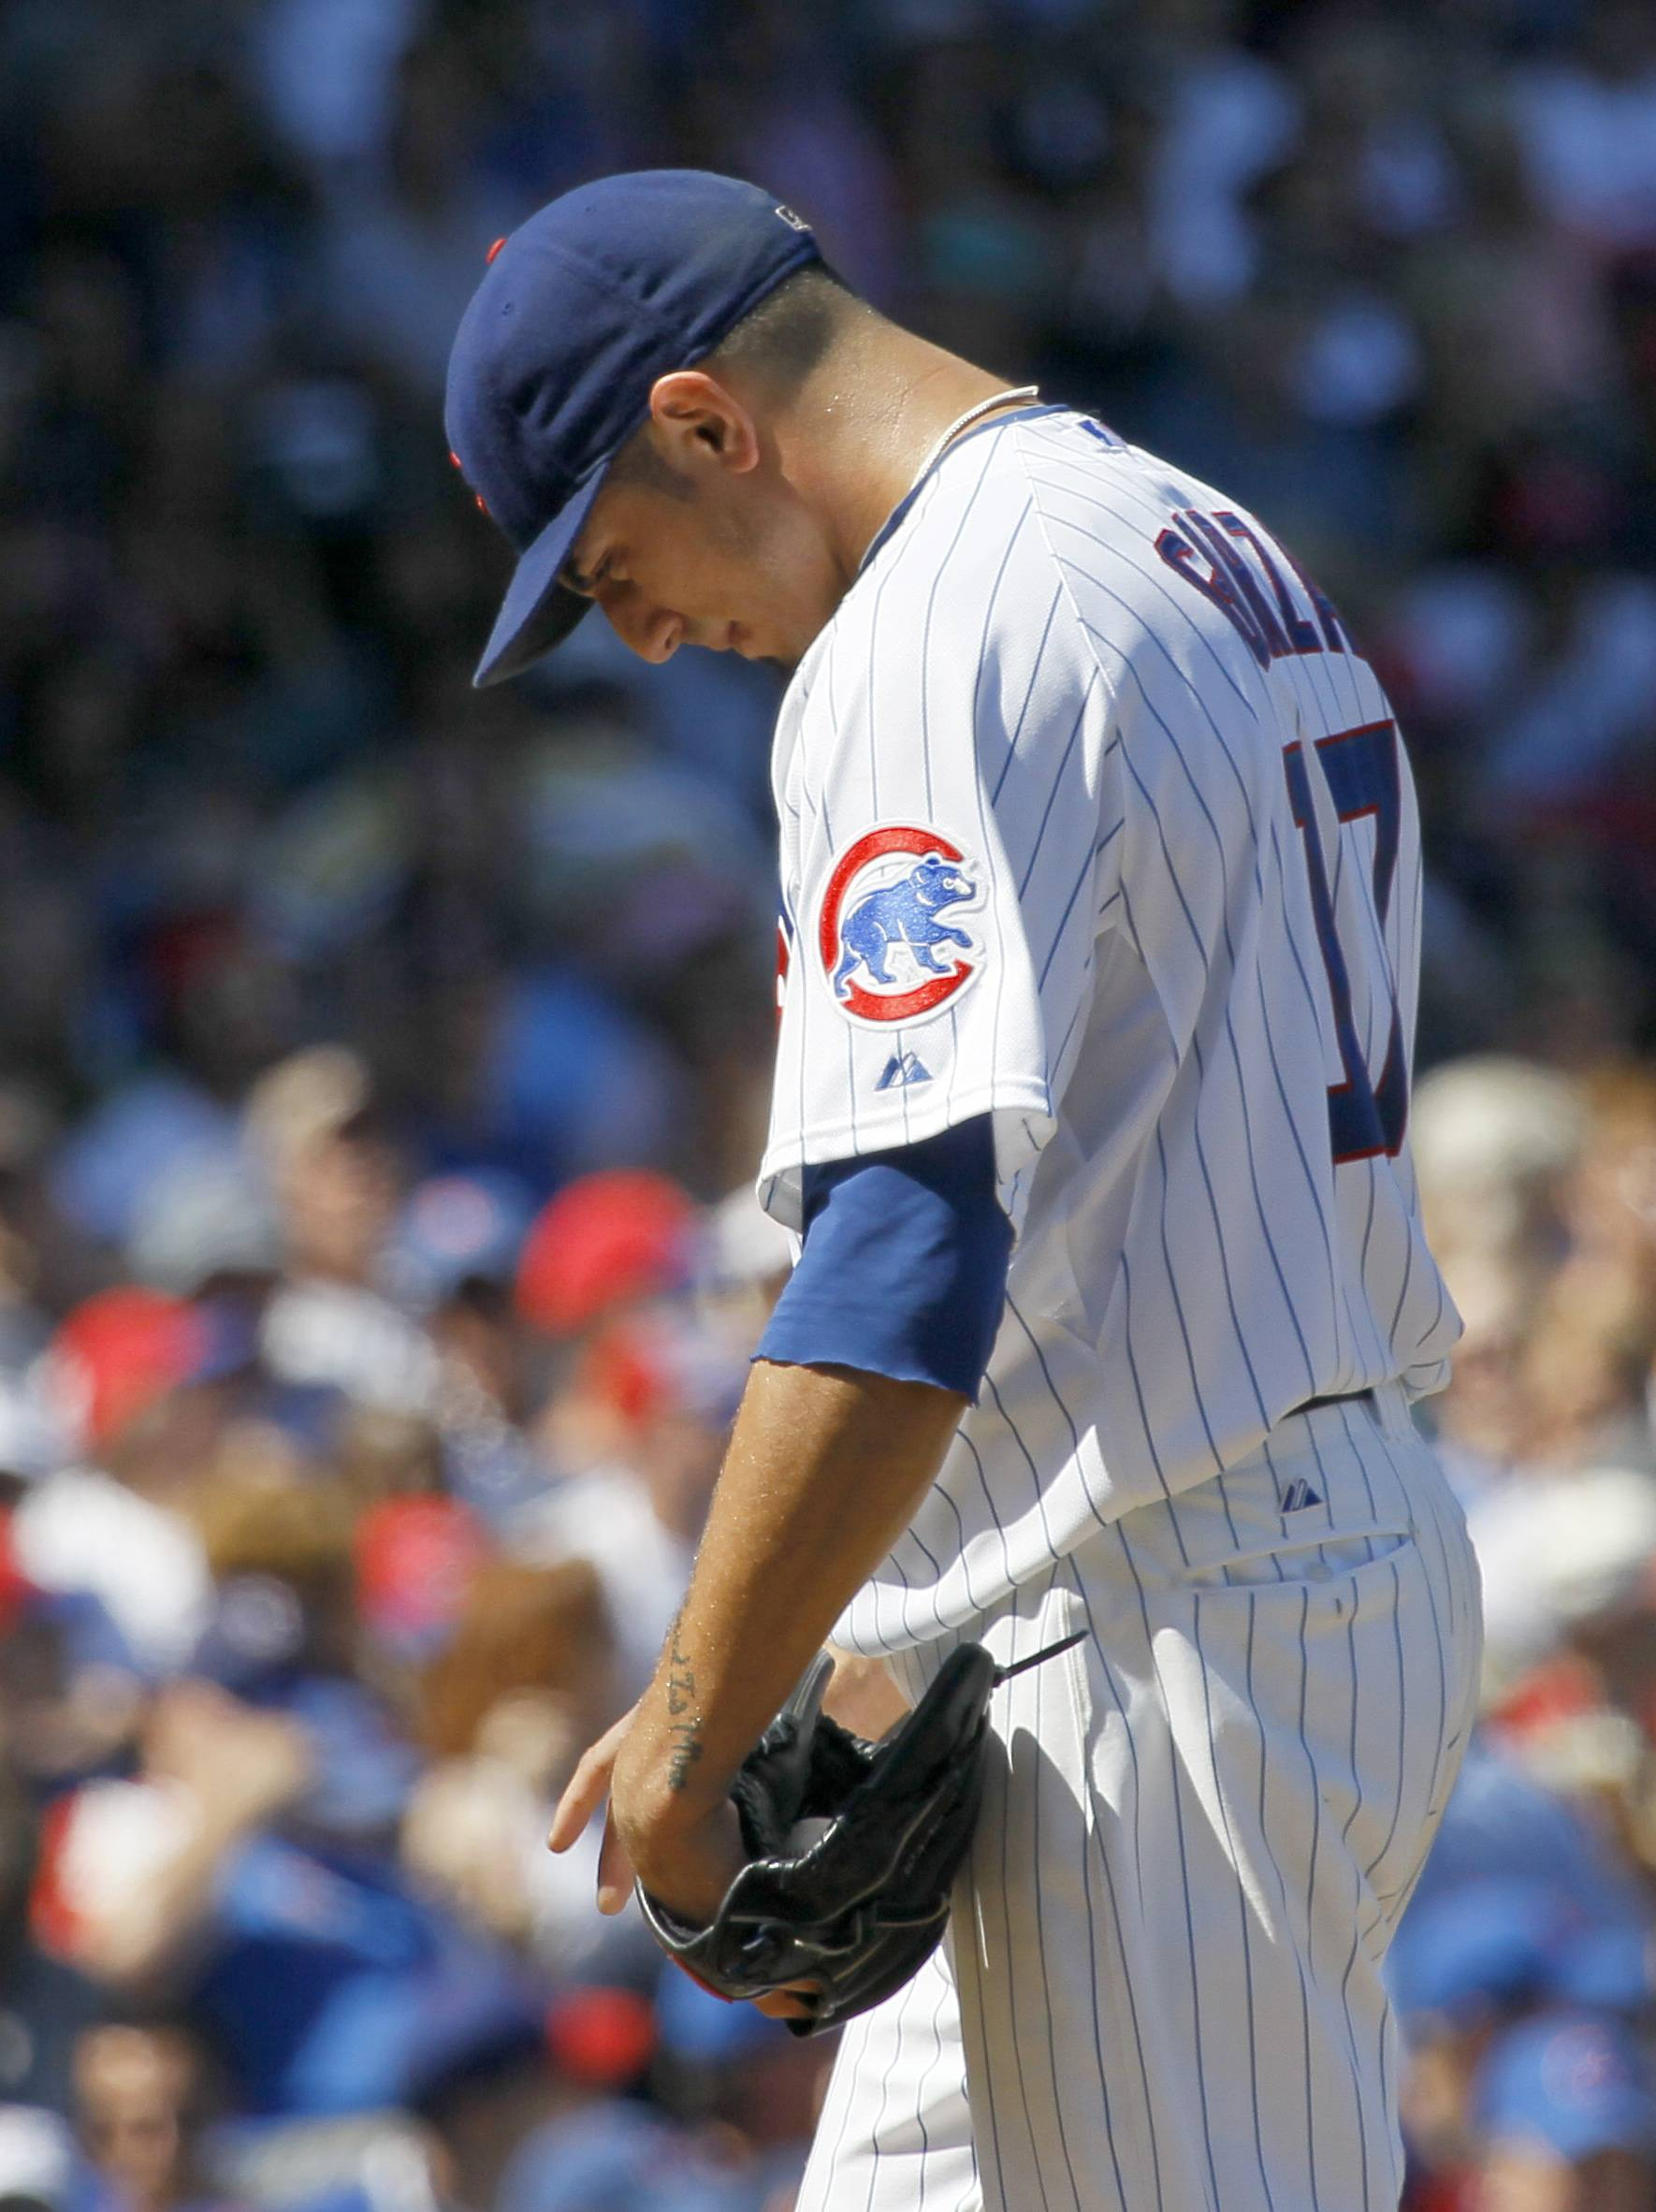 Matt Garza allowed 6 runs, 3 earned, on 8 hits in 5 innings of work. He struck out 6.